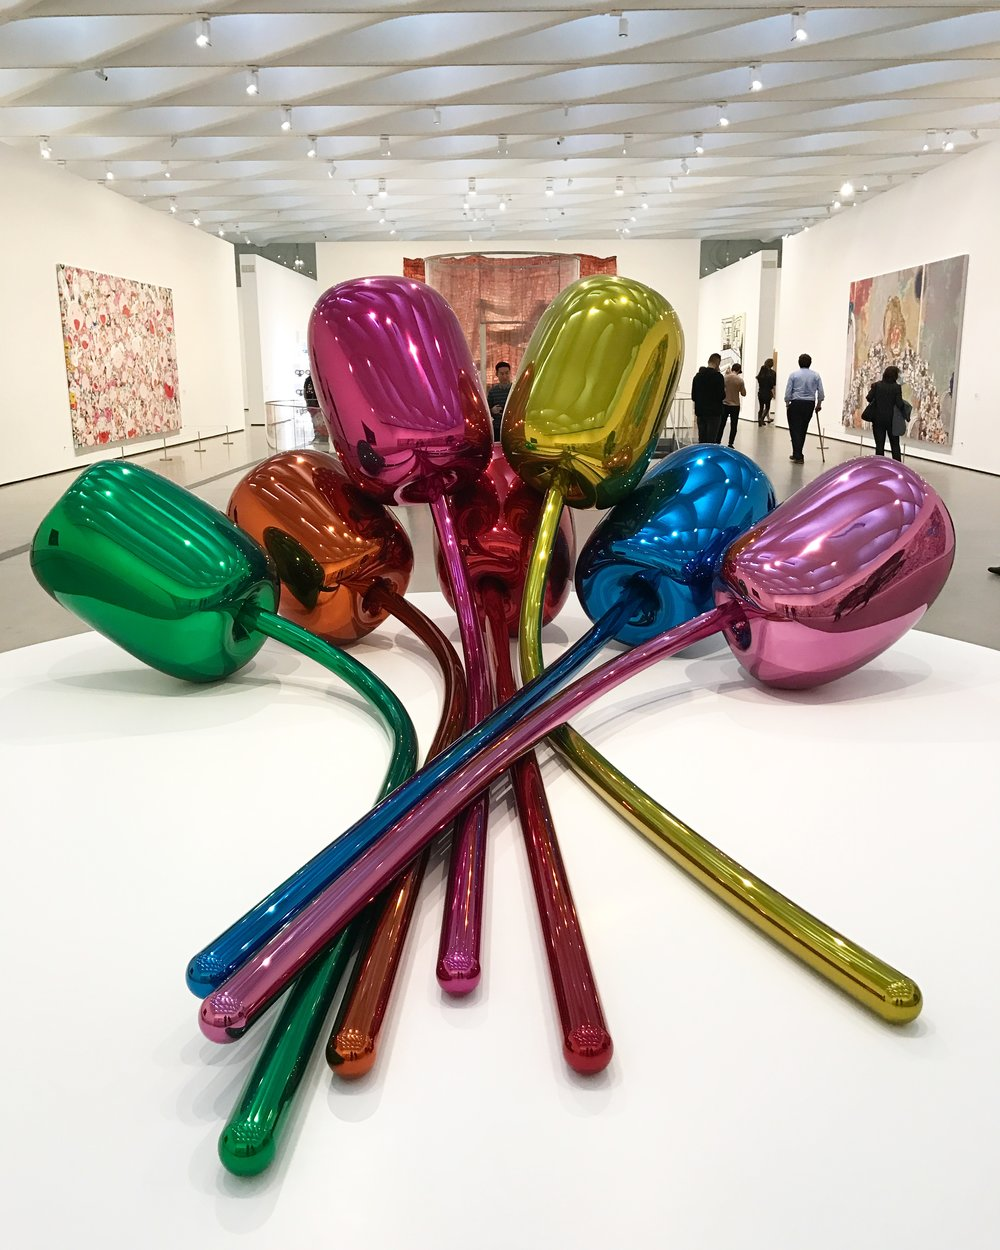 Tulips by Jeff Koons.